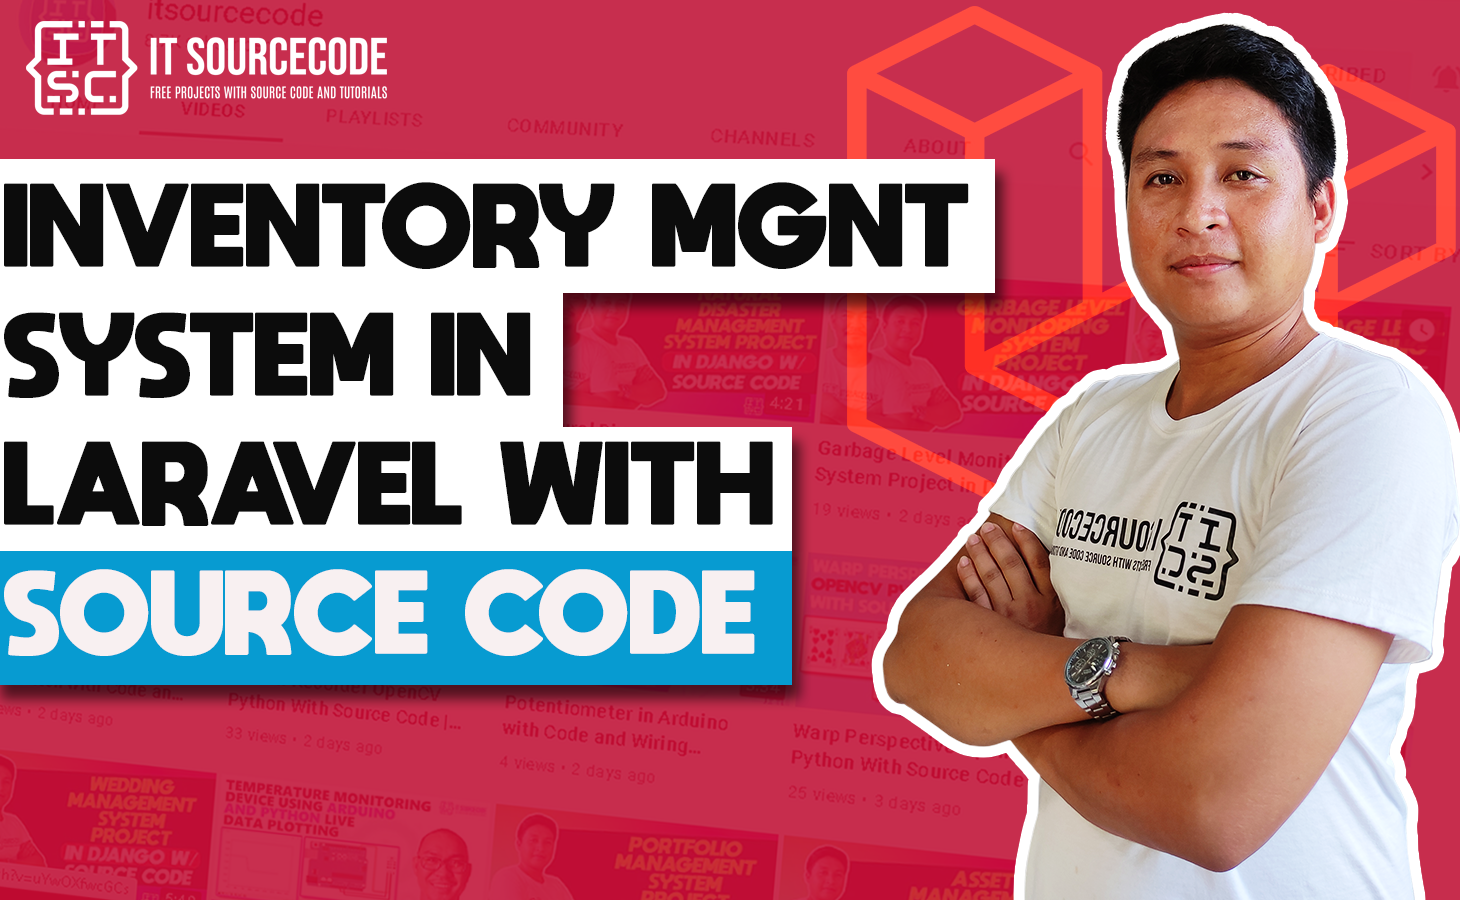 Inventory Management System in Laravel with Source Code